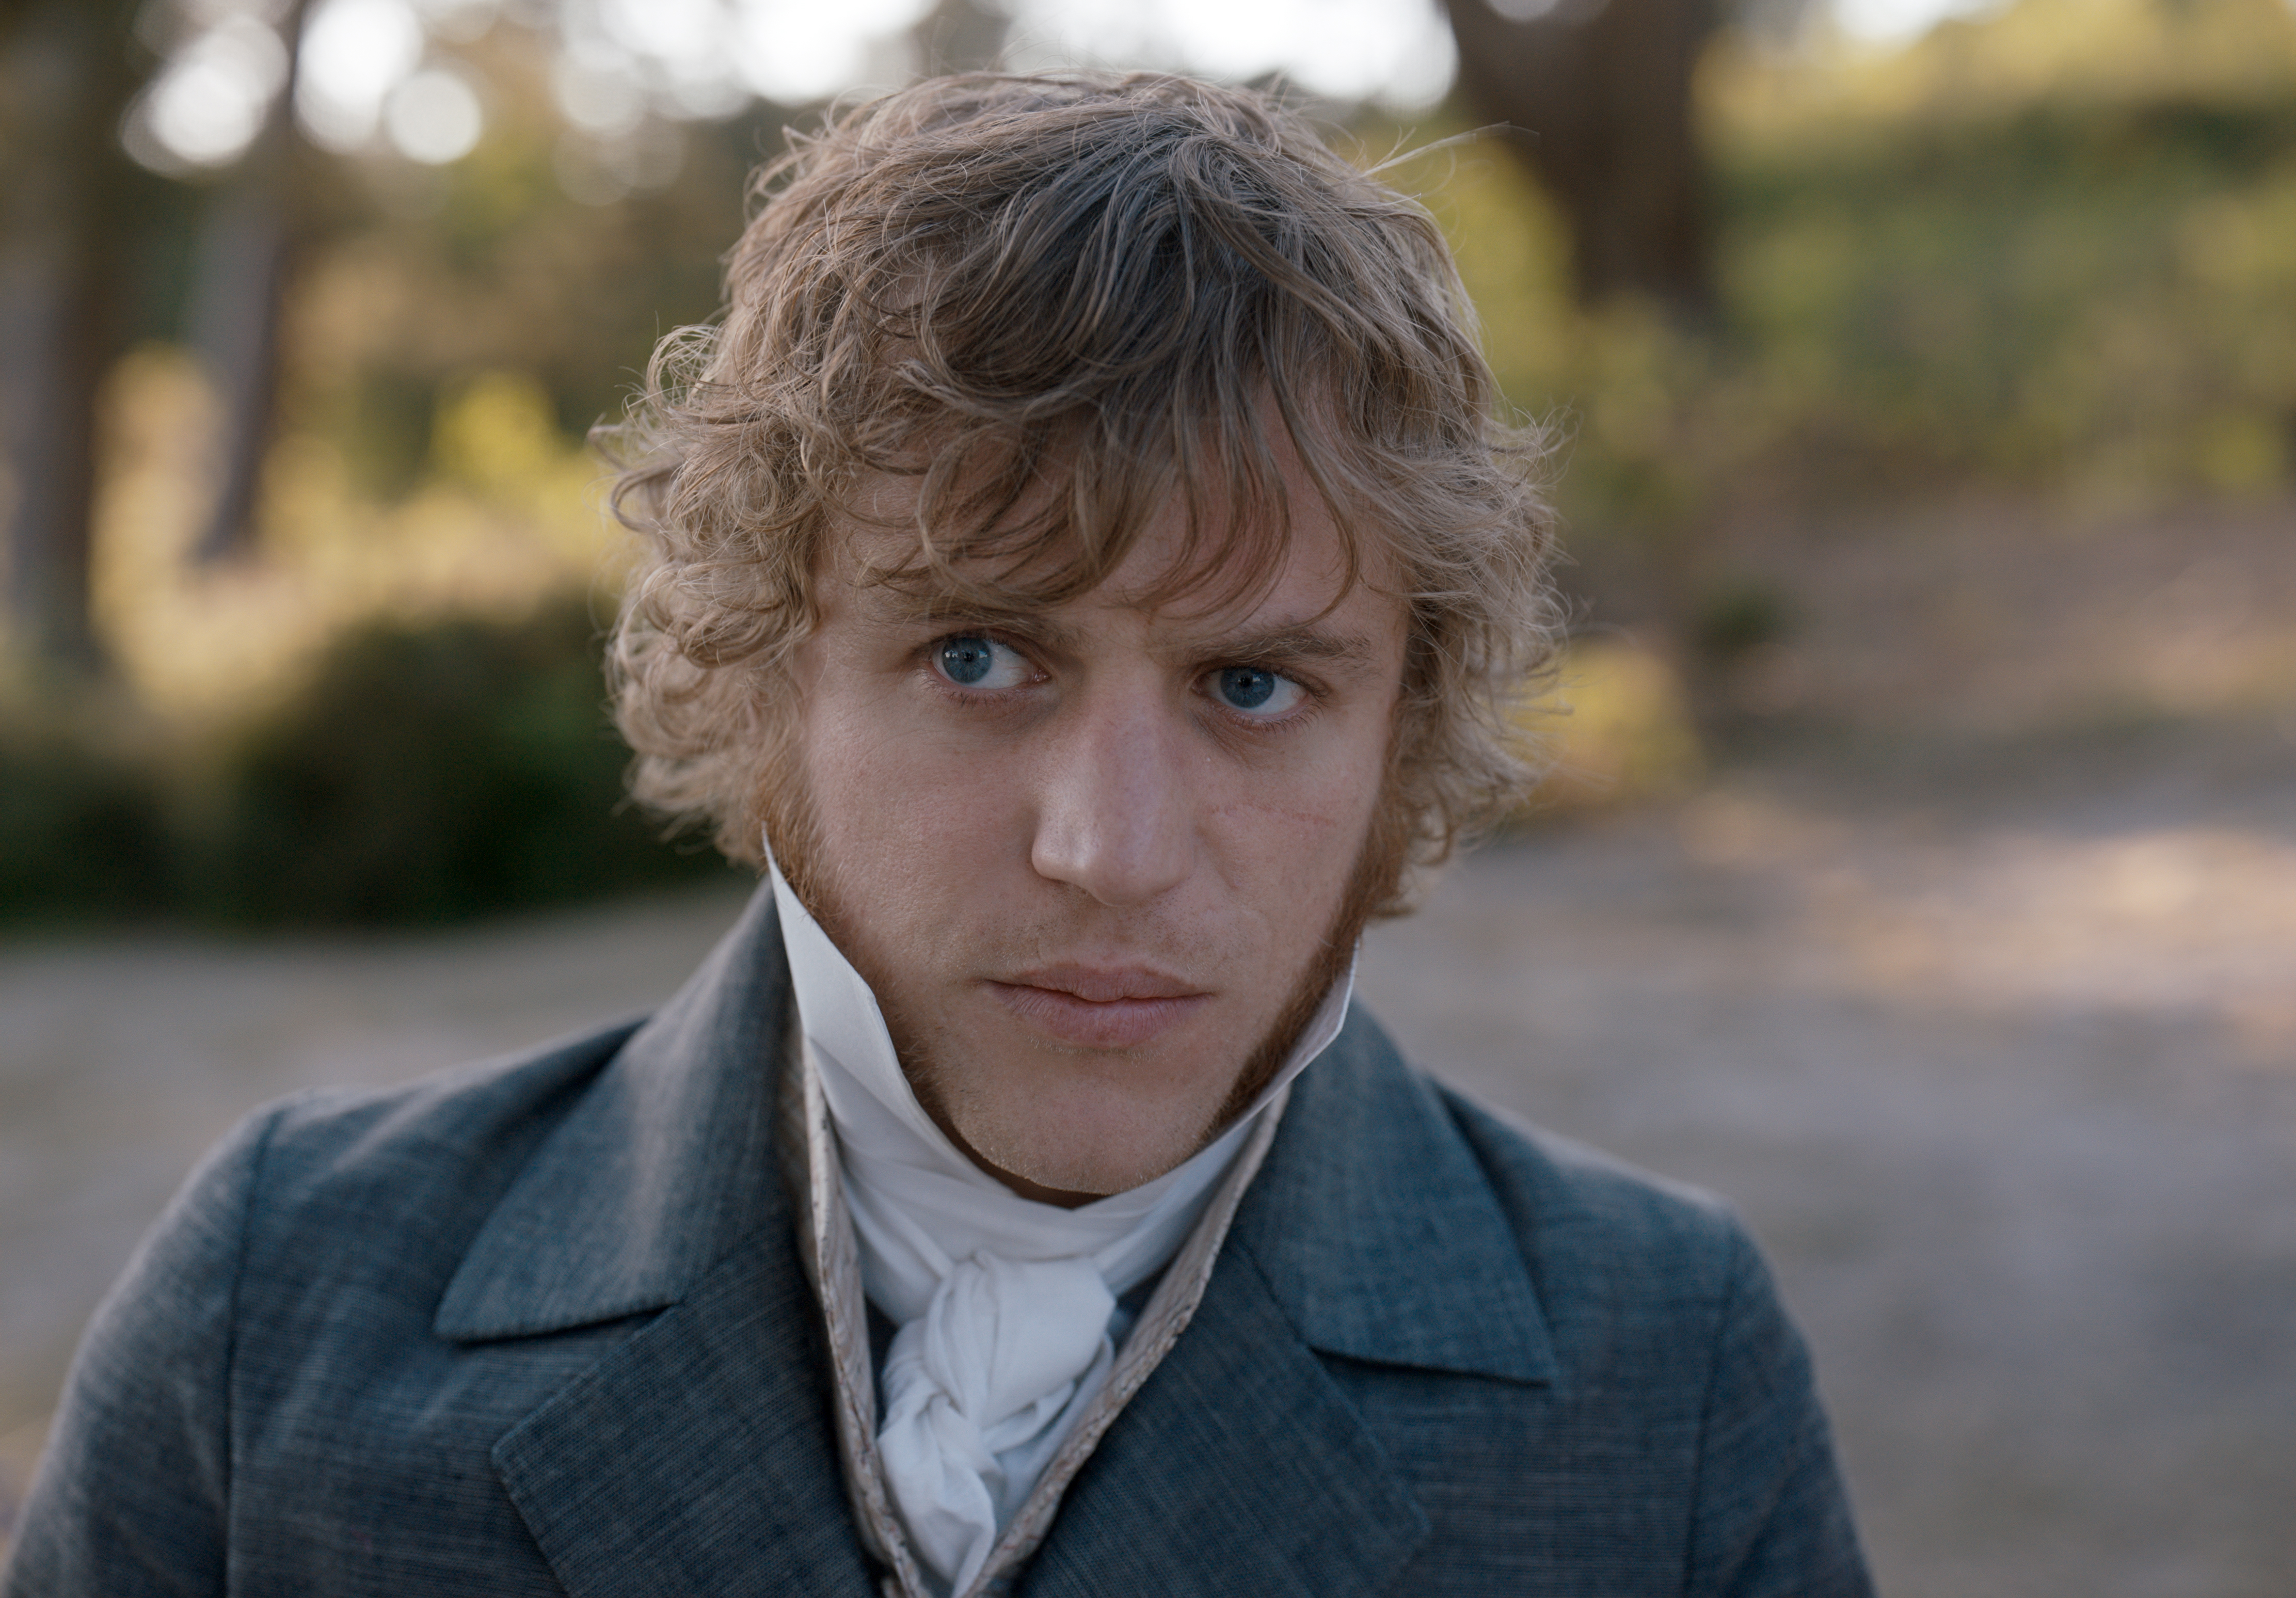 Johnny Flynn stars as  'George Knightley  in director Autumn de Wilde's EMMA, a Focus Features release. Credit : Focus Features